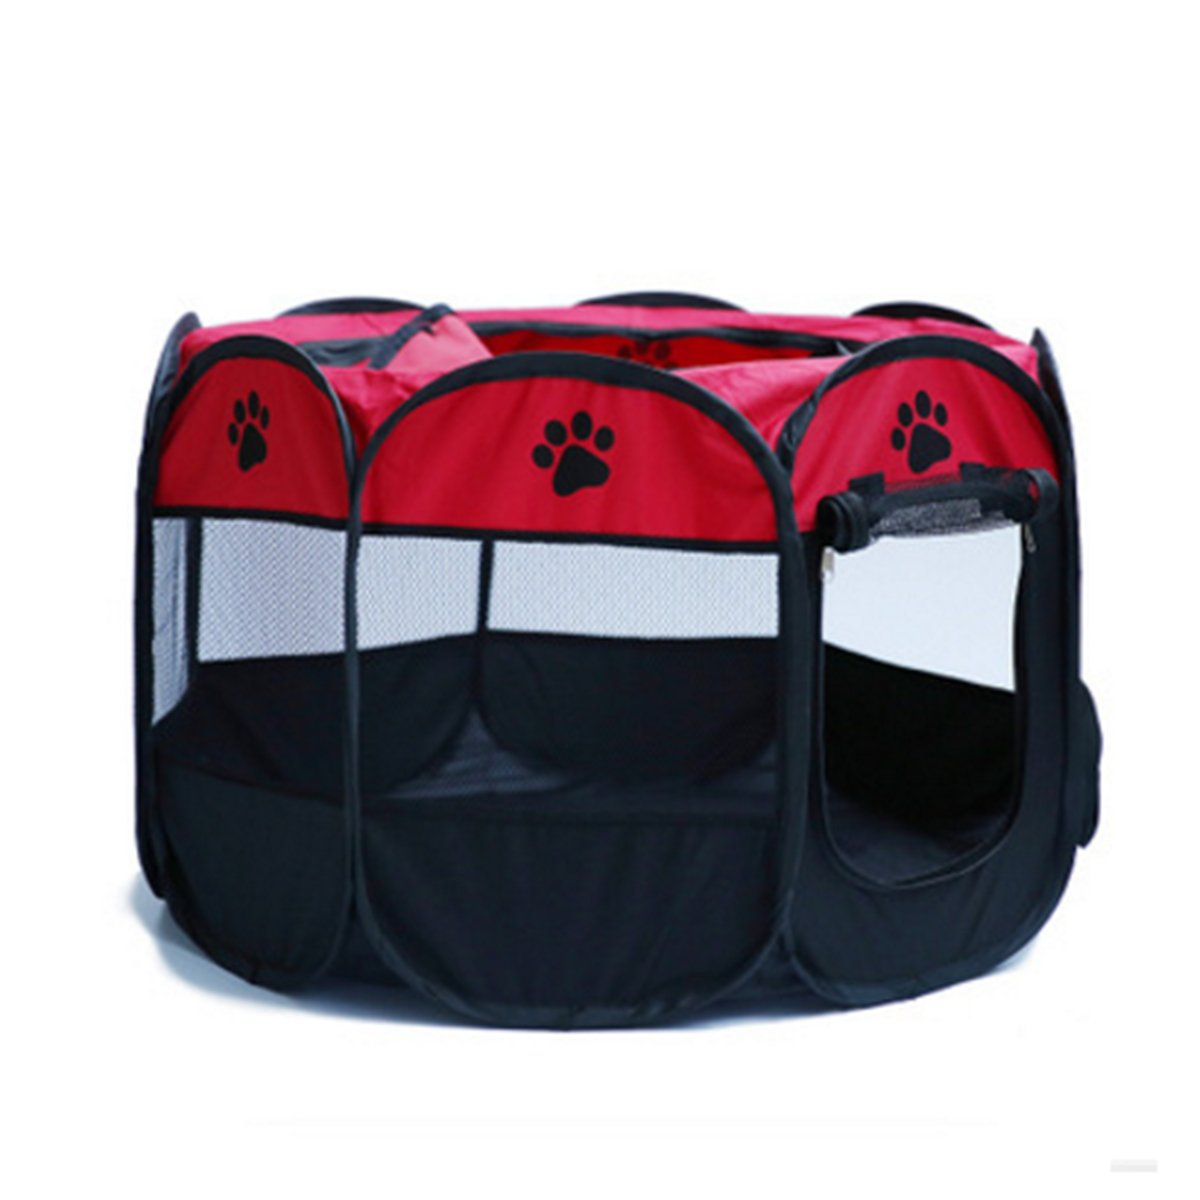 MESASA Portable Foldable Pet Playpen, Indoor/Outdoor, Dog/Cat/Puppy Exercise pen Kennel, Removable Mesh Shade Cover, dog pop up silhouettes pet pen (L, #4)